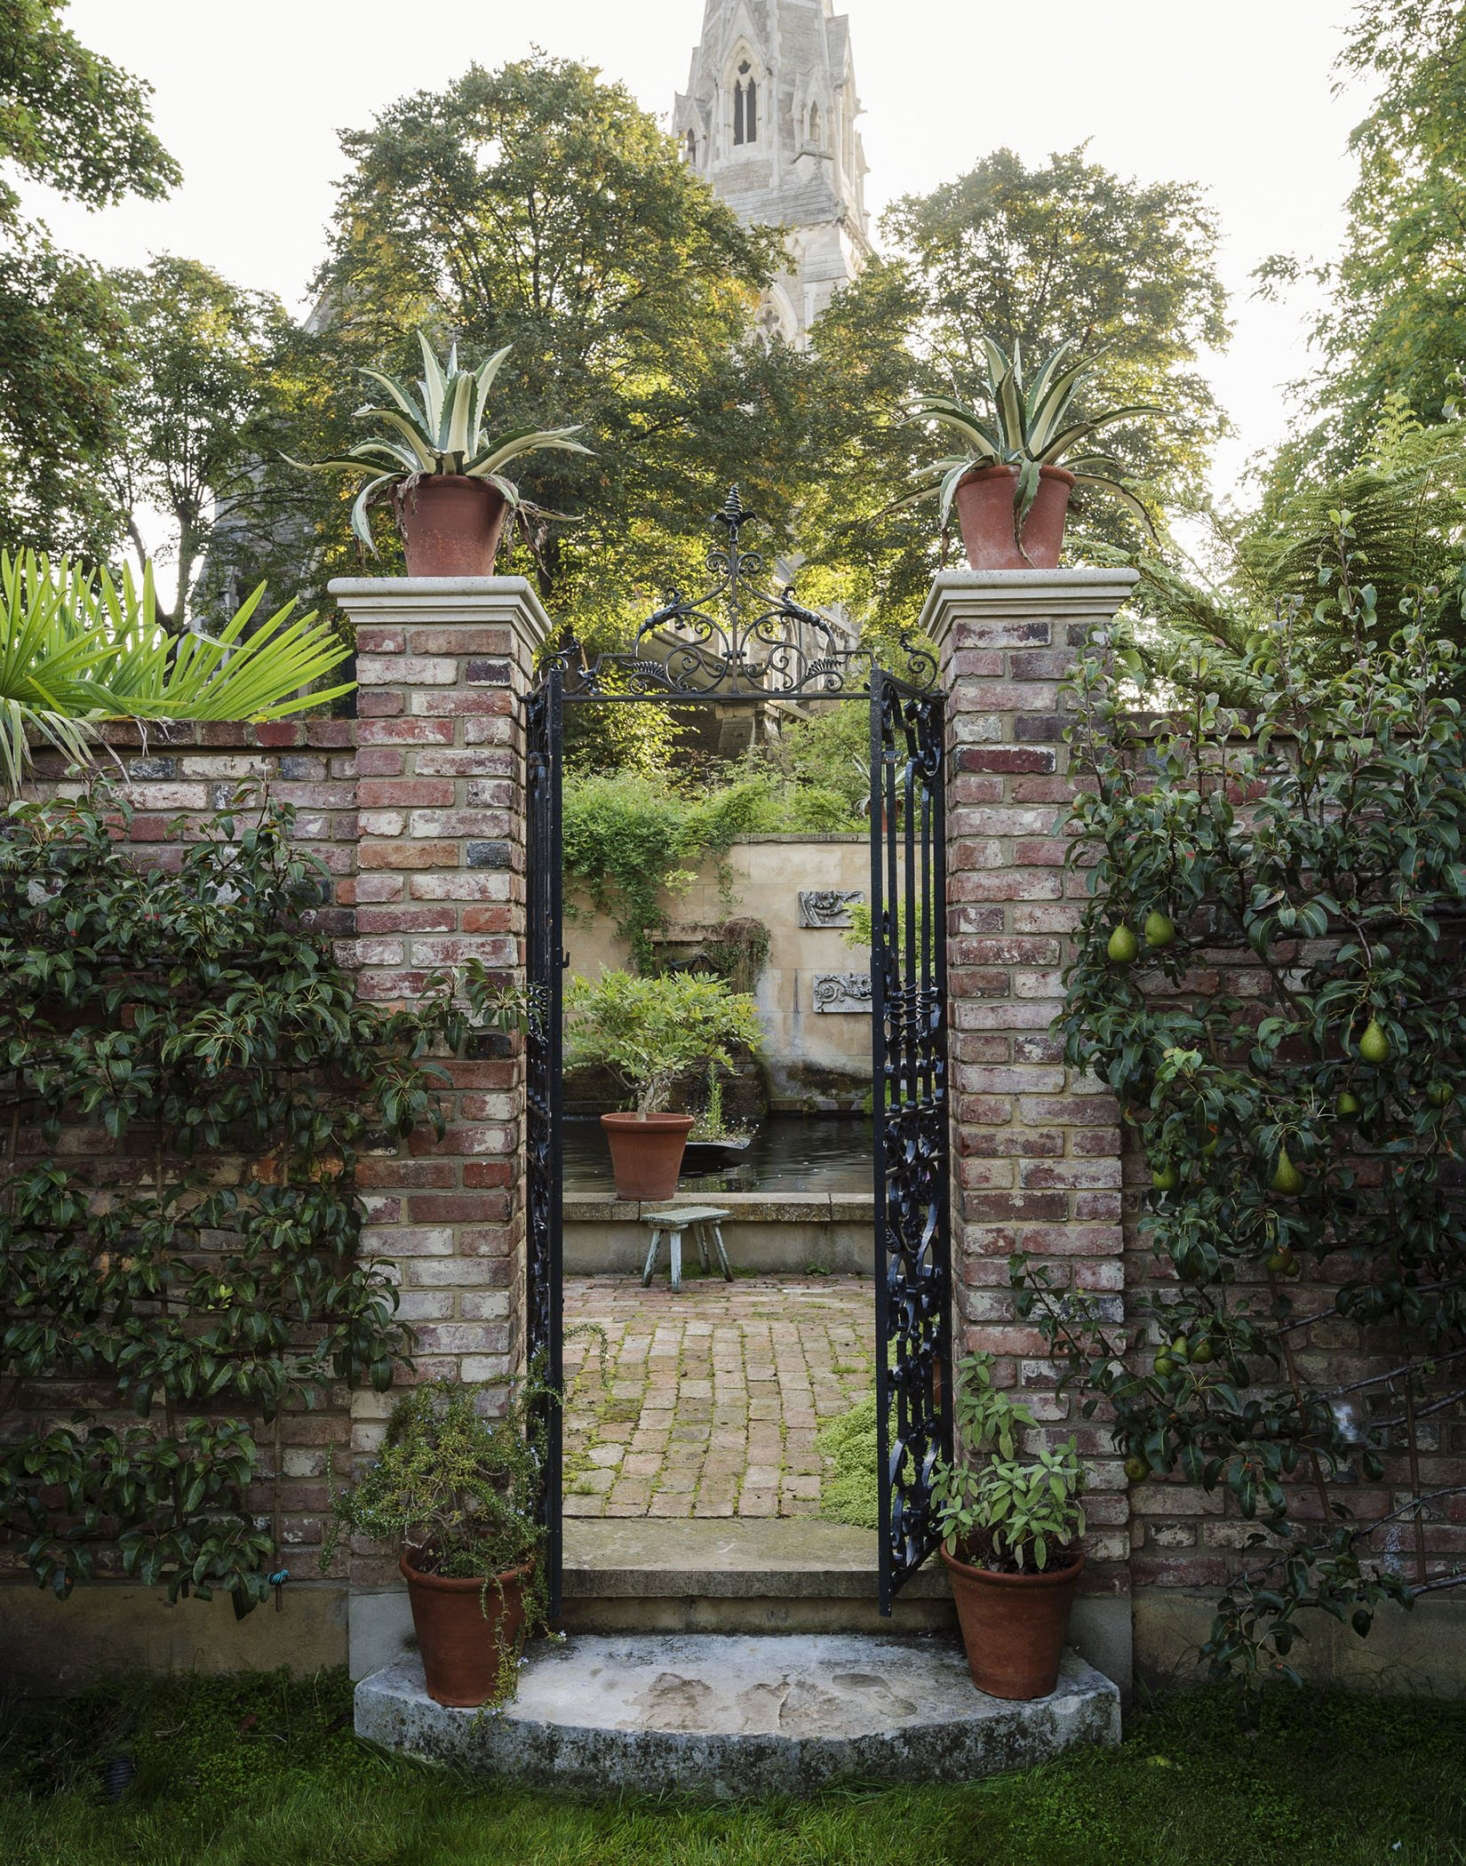 Photograph by Matthew Williams for Gardenista. See more of this garden in our Gardenista book.